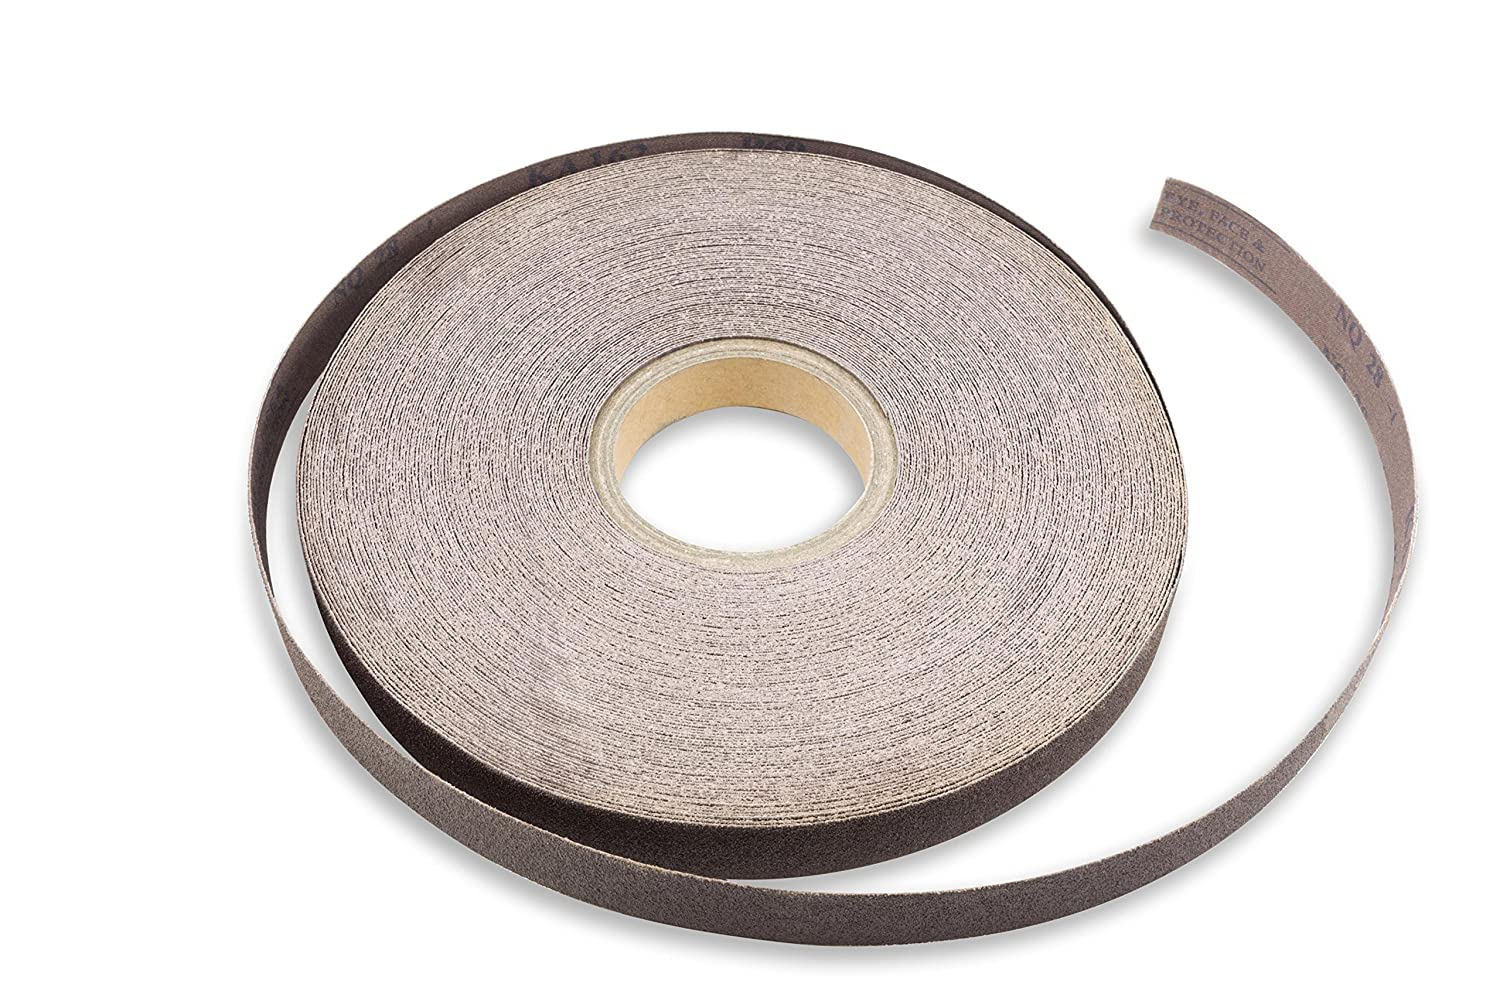 VSM Abrasives 1 X 50 Yard 150 Grit Aluminum Oxide Cloth Roll F Weighted Backing Very Fine Grade